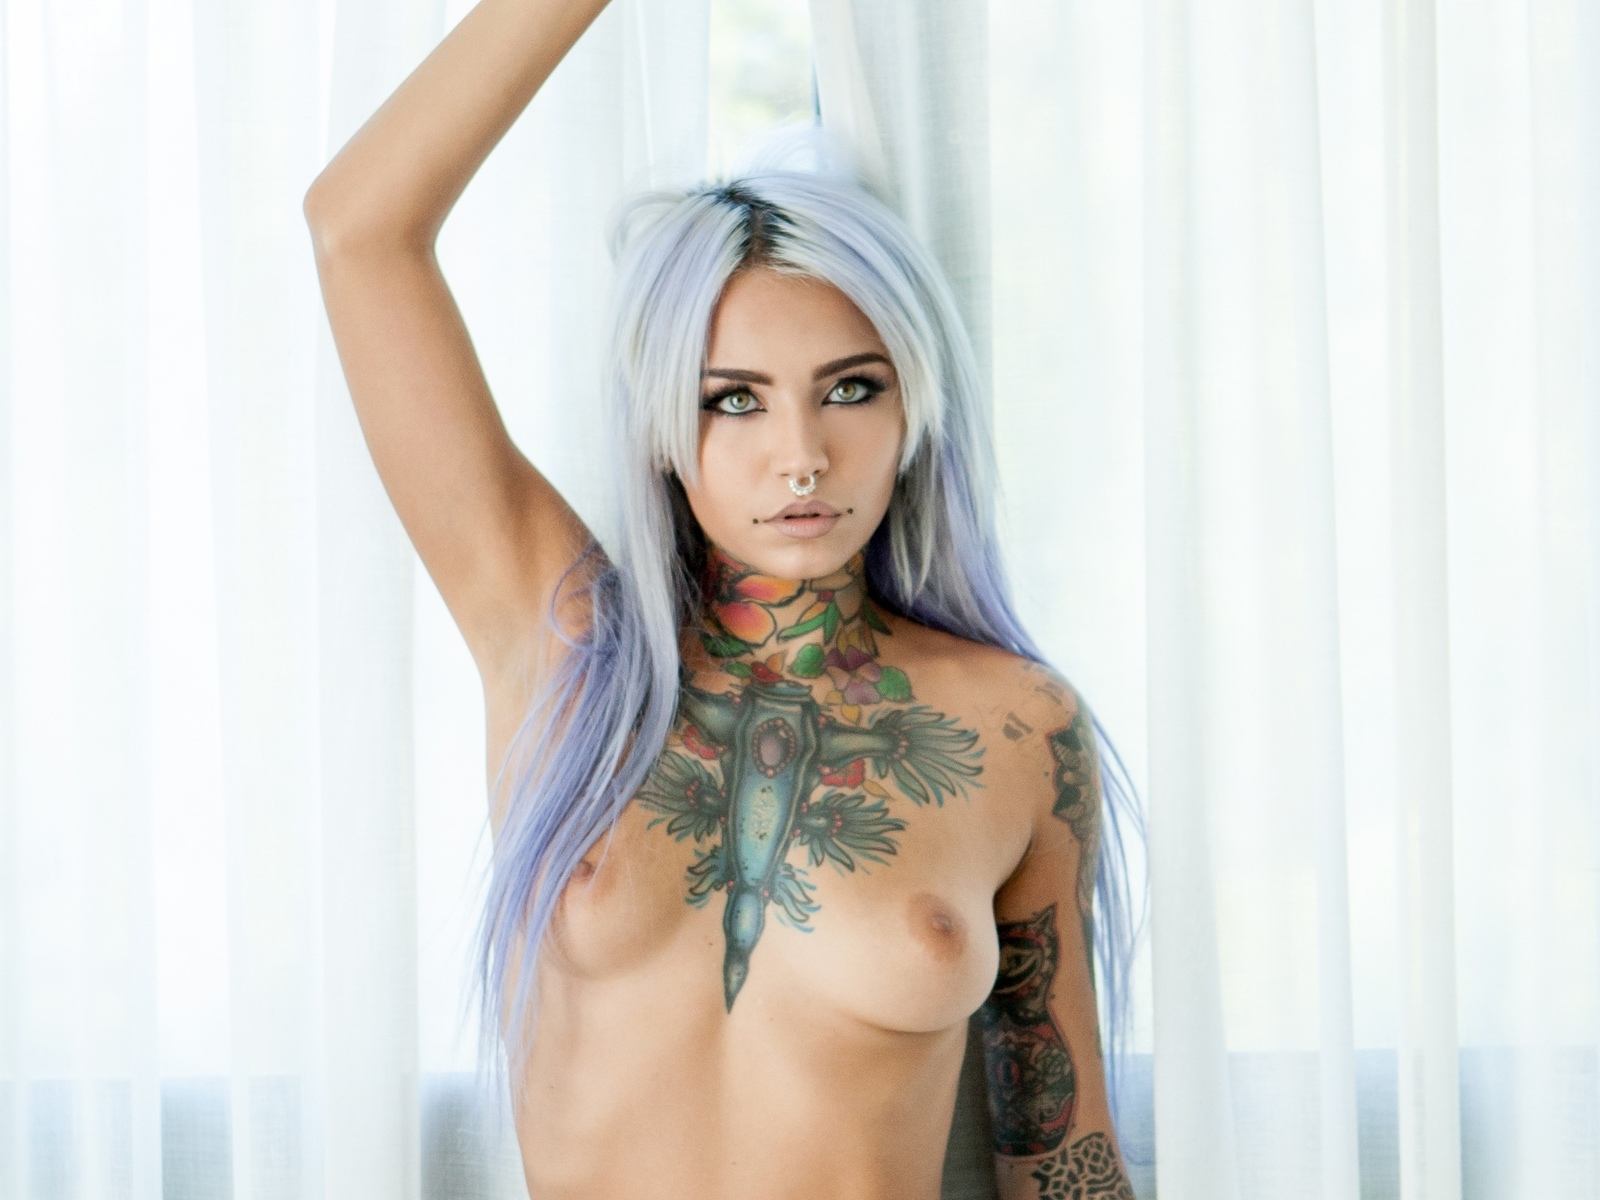 fishball, tits, tats